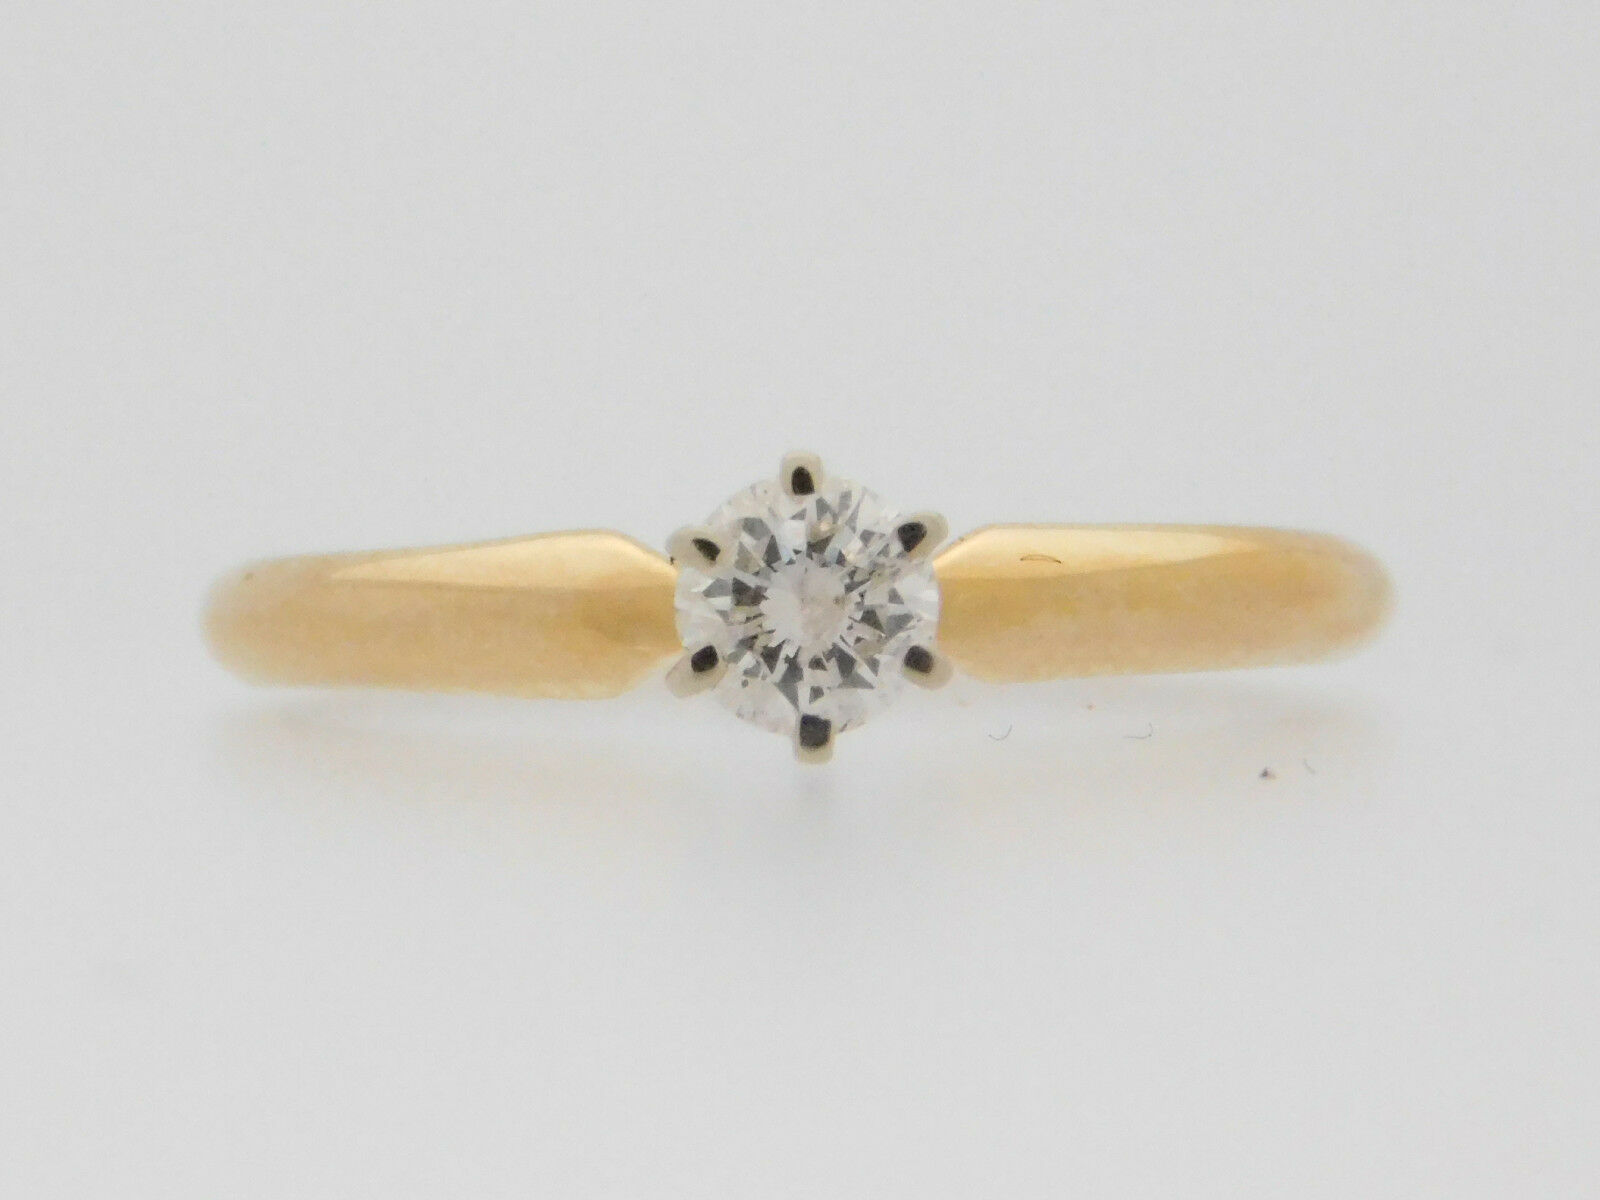 0.25 CARAT ROUND CUT DIAMOND SOLITAIRE ENGAGEMENT RING 14K YELLOW gold